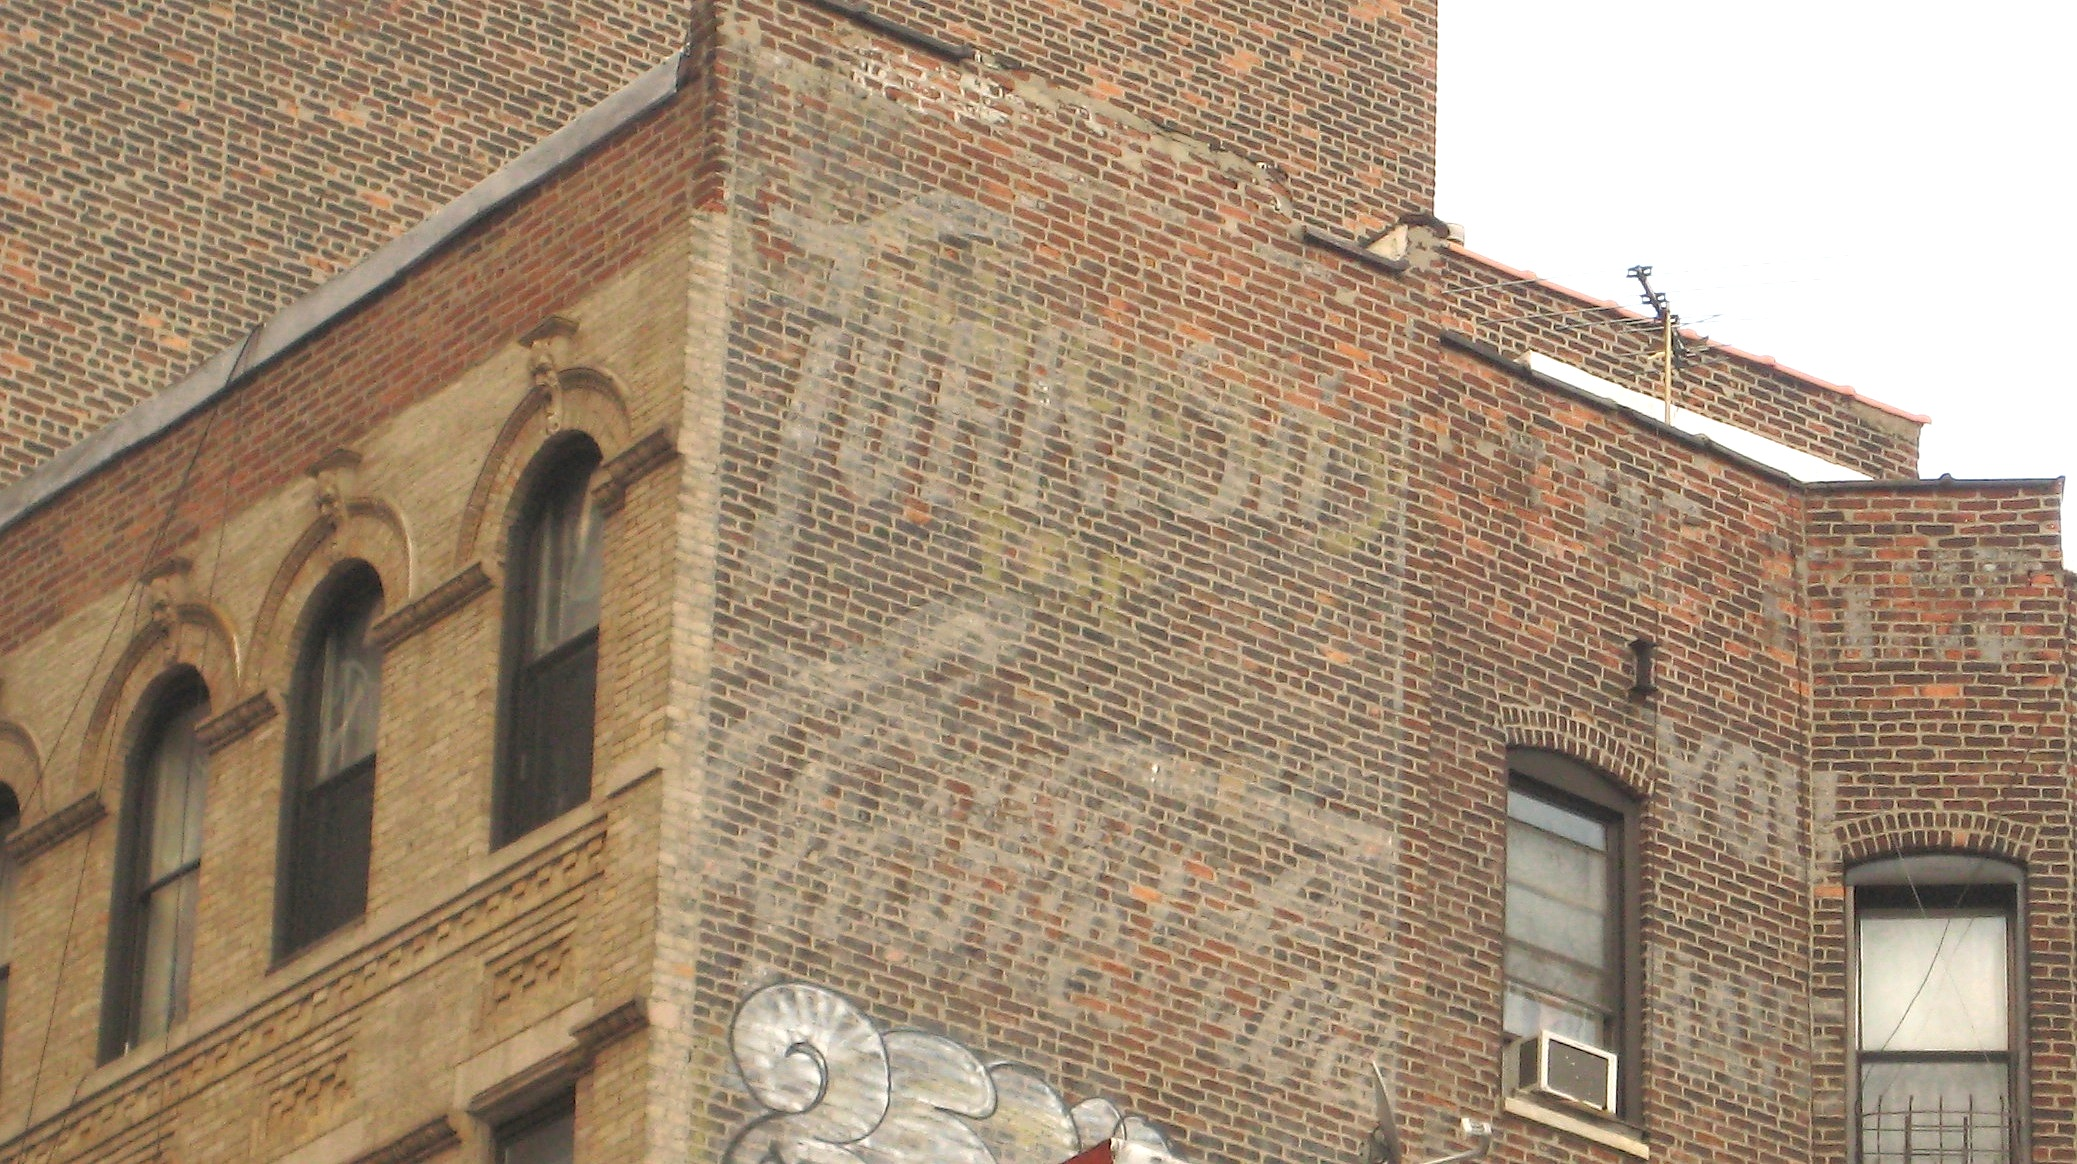 Faded Ads On New York Buildings